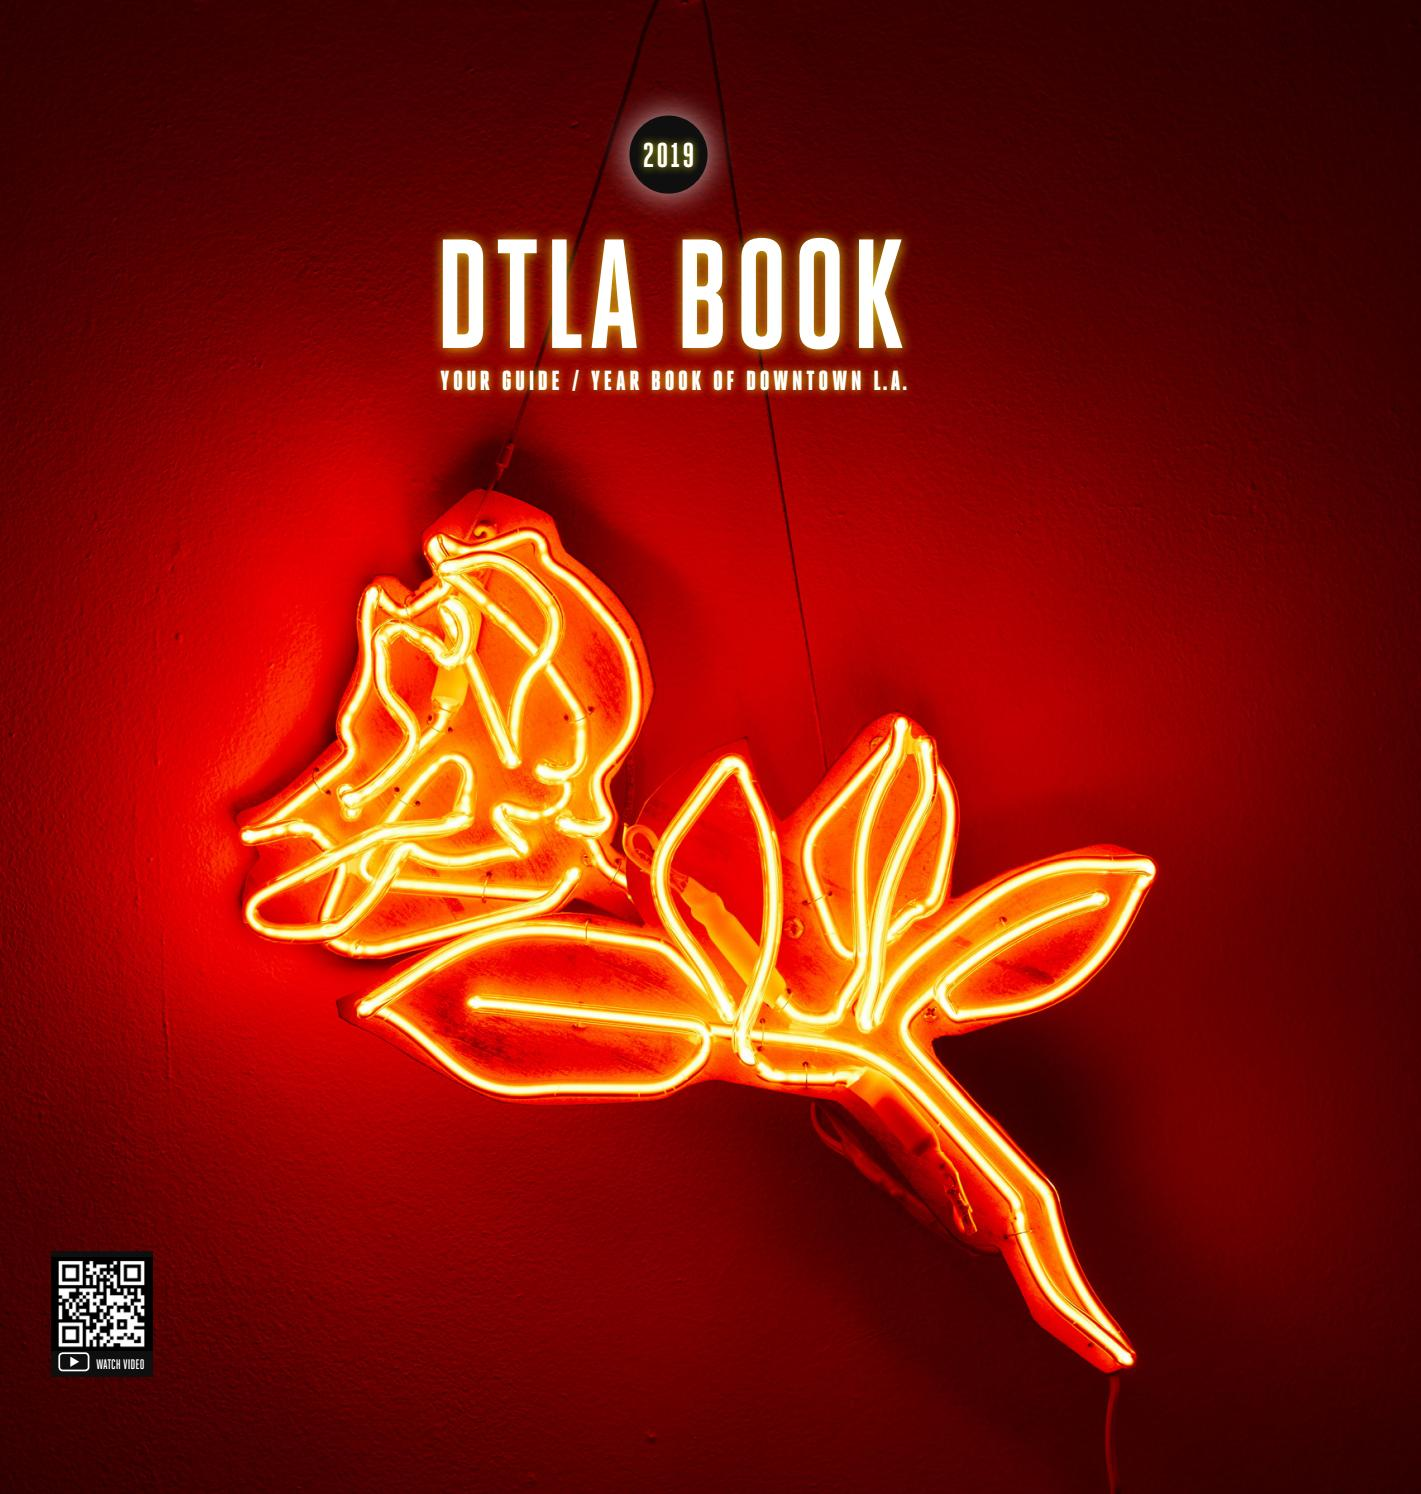 DTLA Book 2019 (Digital Version) by District 8 Media - issuu af12b9424cf20